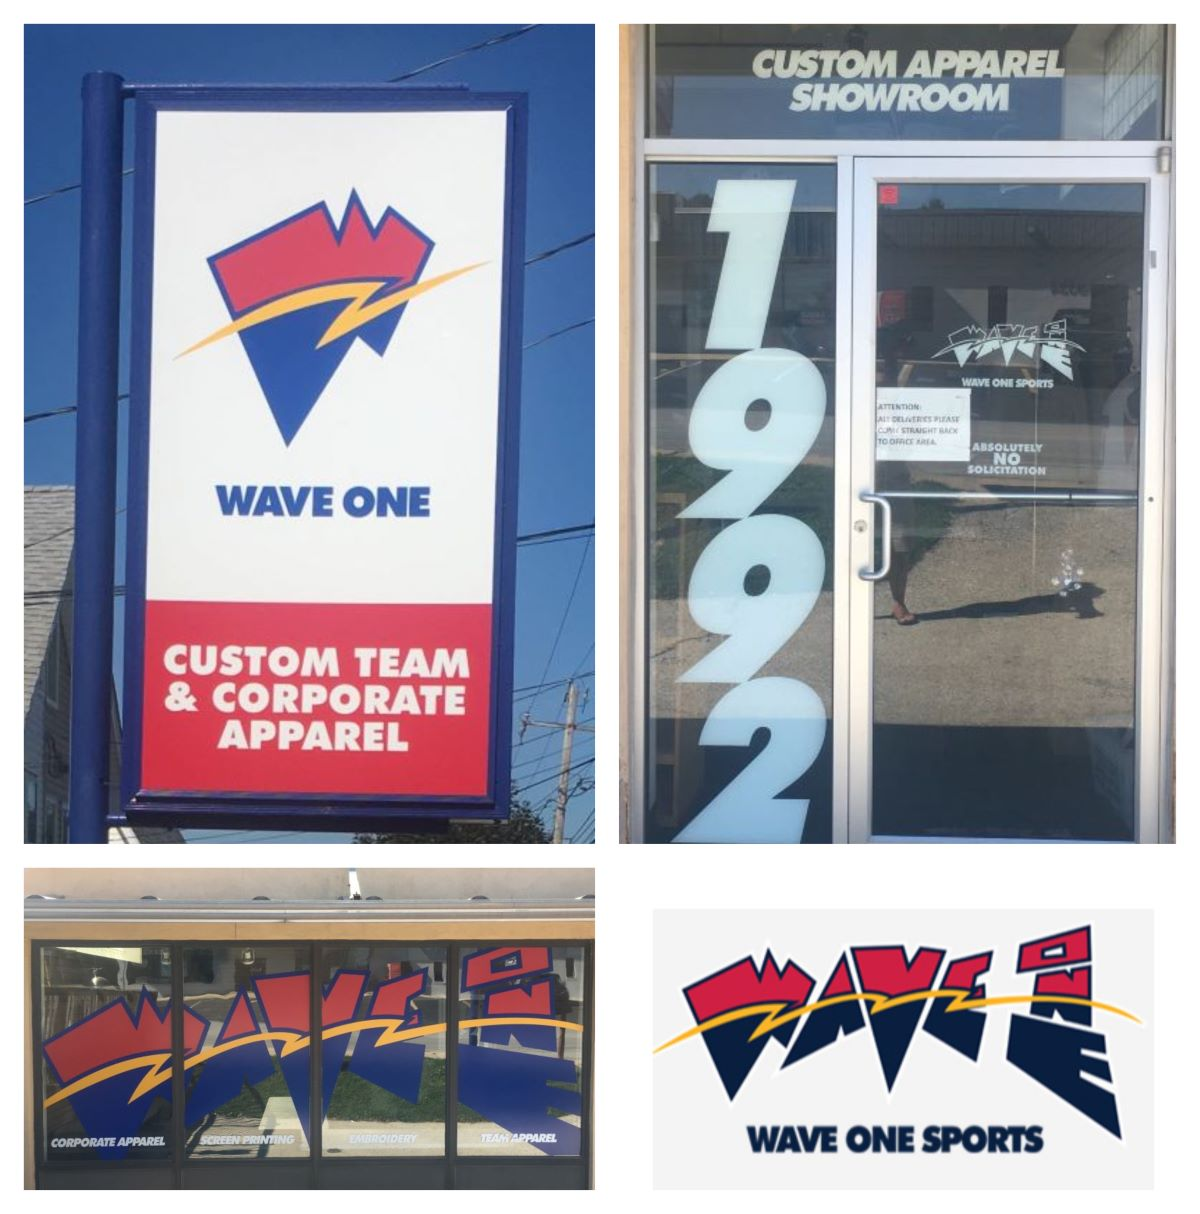 TOP 7 REASONS TO USE WAVE ONE SPORTS  FOR YOUR SPORTS APPAREL